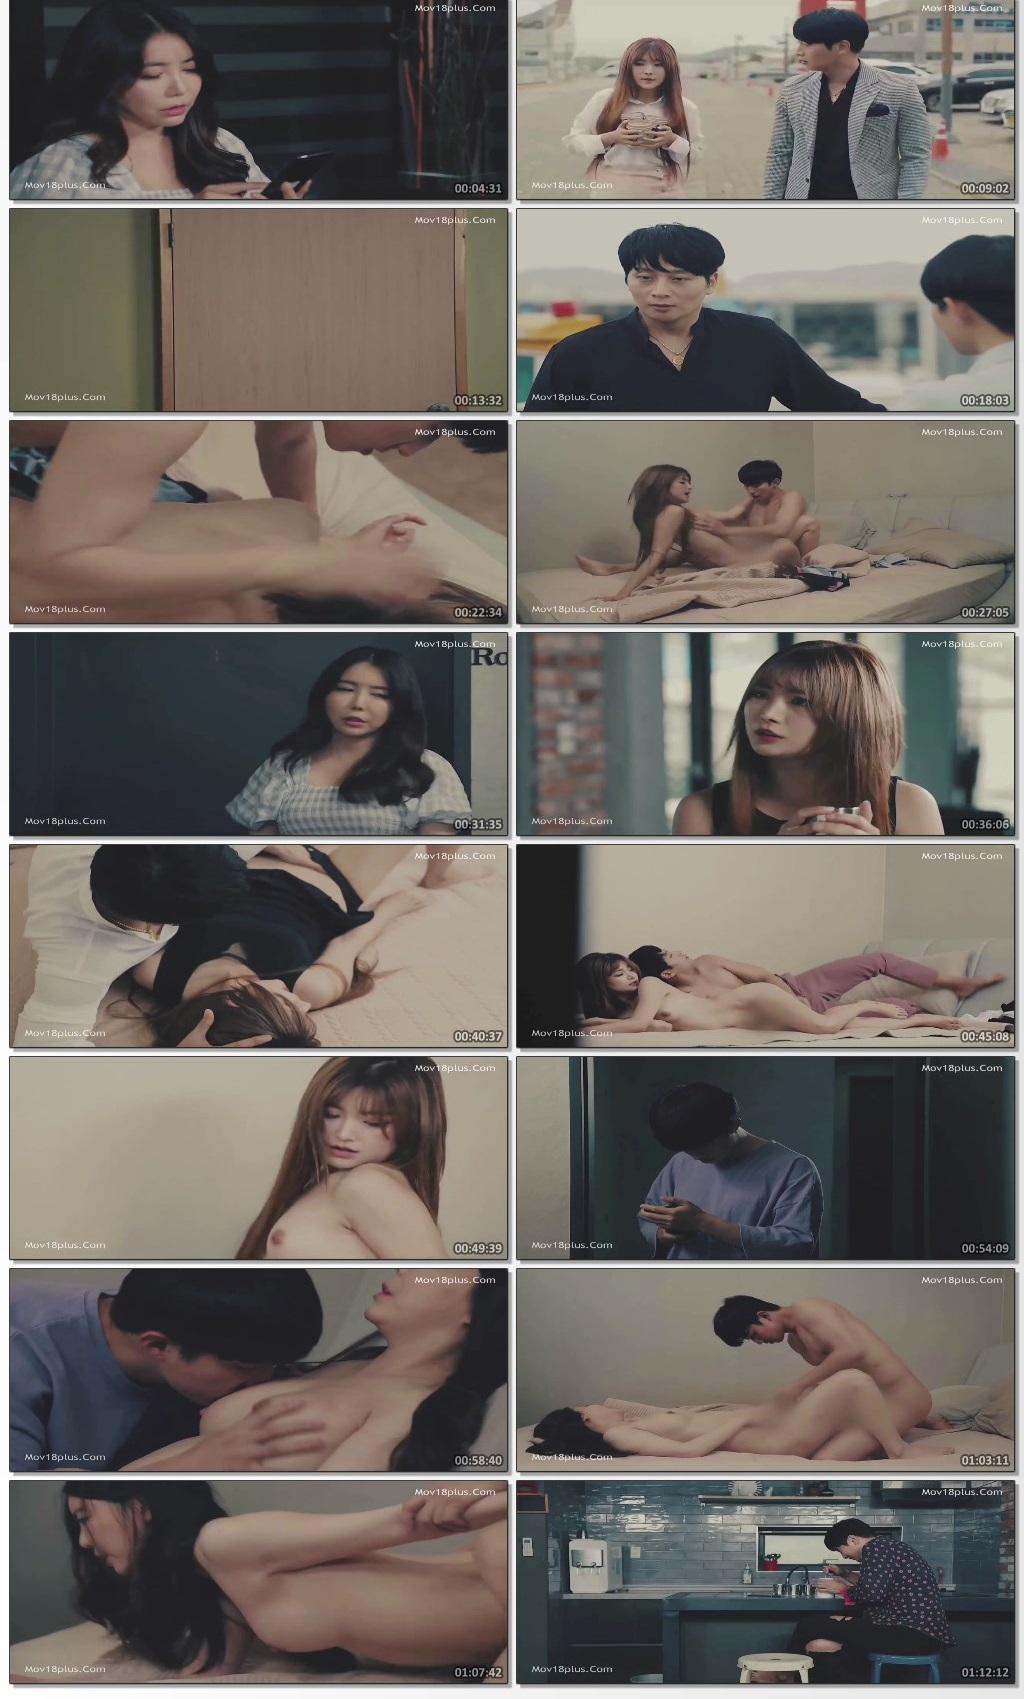 Sister-s-Delicious-Swapping-2021-www-filmguro-site-Korean-Movie-720p-HDRip-500-MB-mkv-thumbs